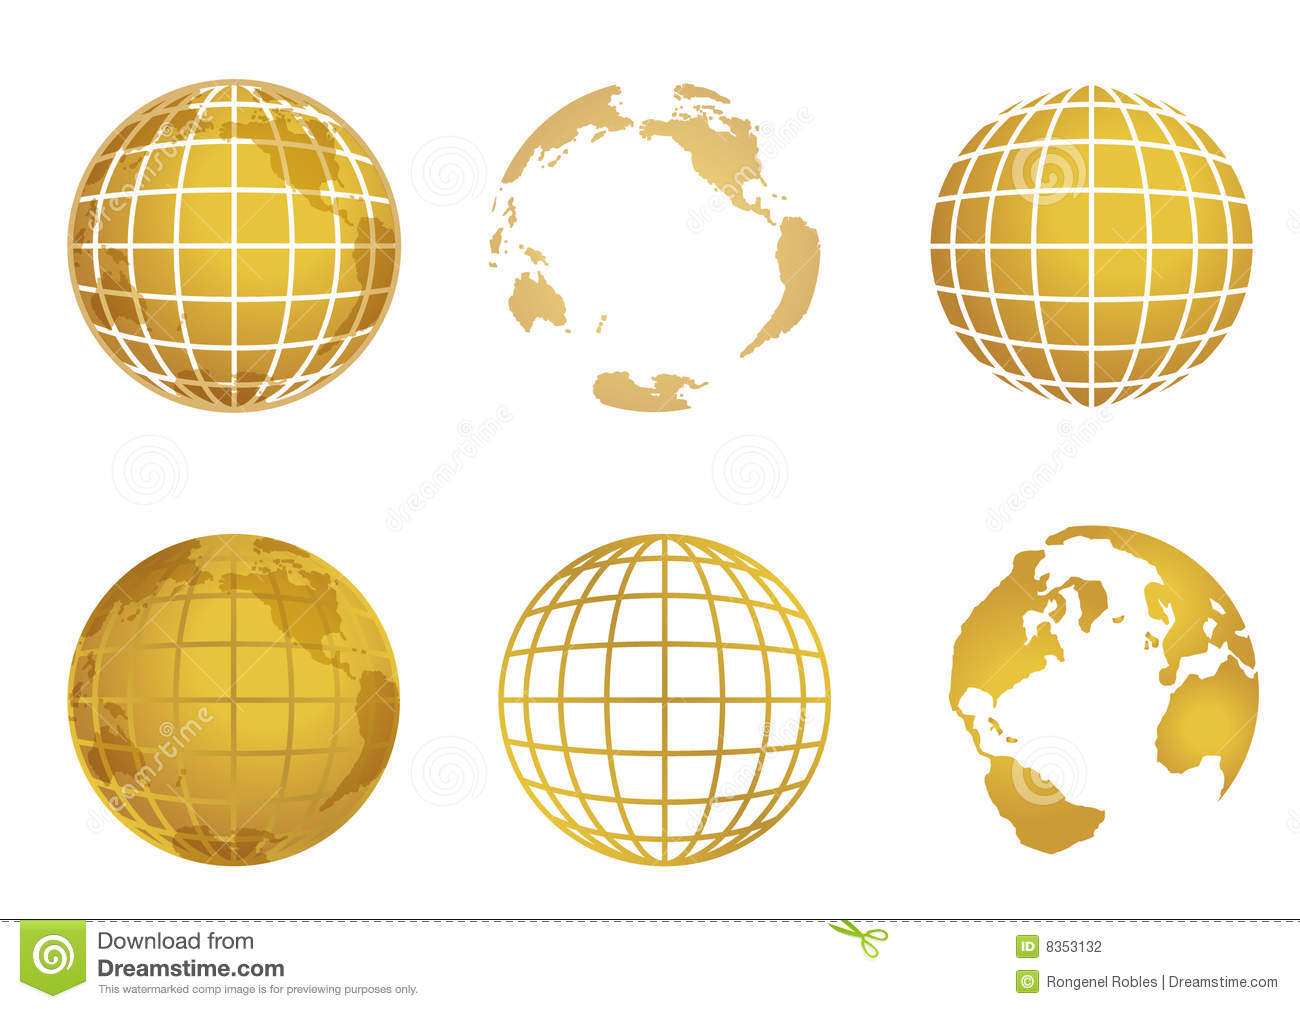 Globe world map stock vector illustration of lines gold 8353132 globe world map gumiabroncs Images